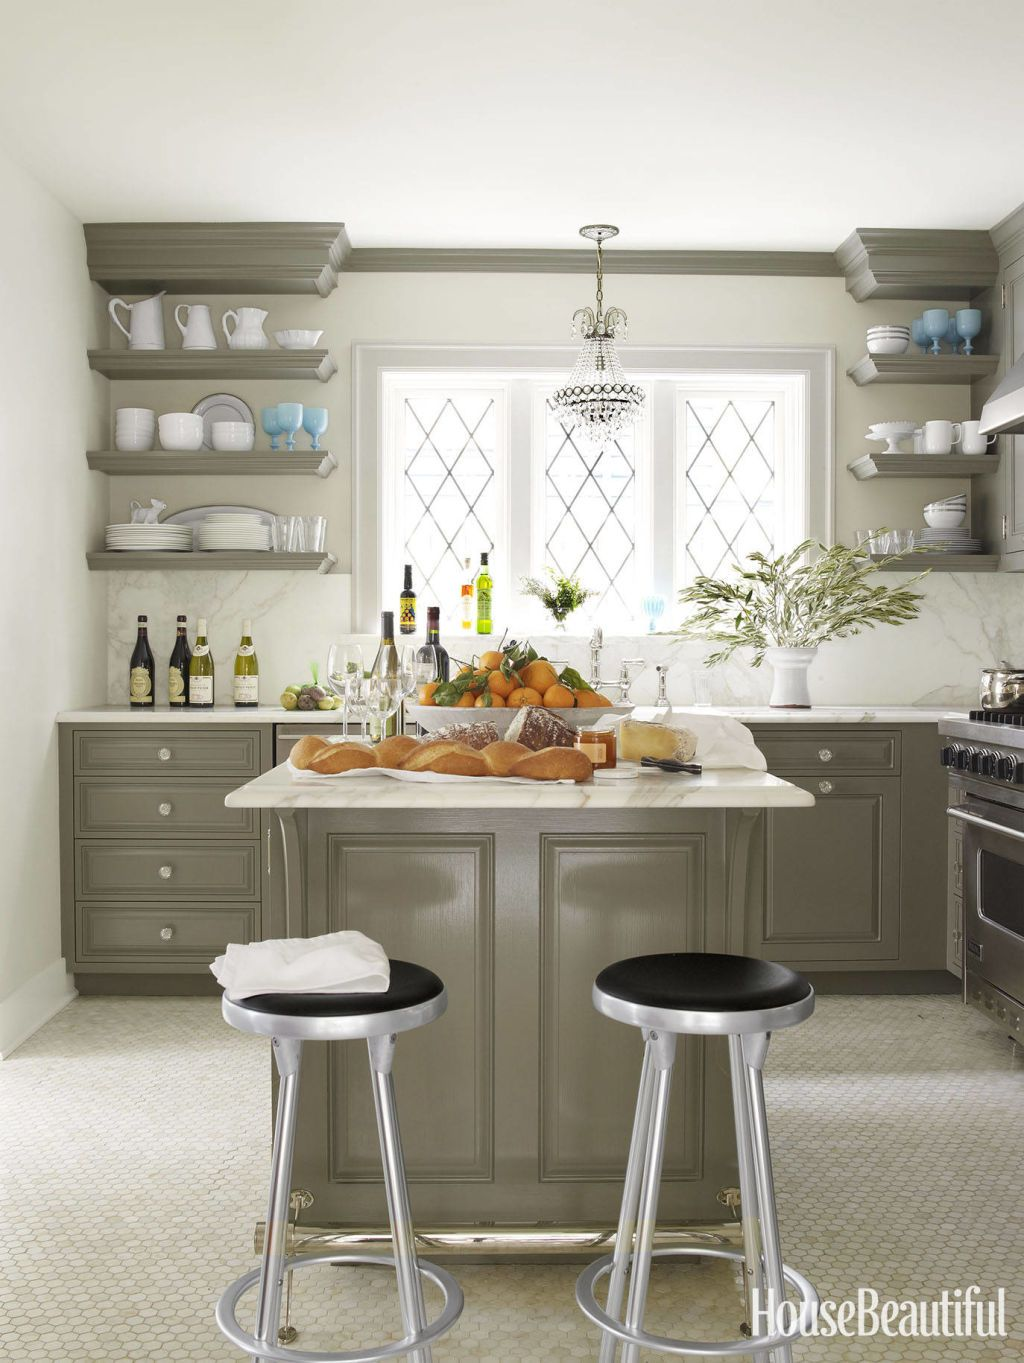 Removing Kitchen Cabinet Doors For Open Shelving Stylish Kitchen Kitchen Colors Kitchen Cabinet Colors